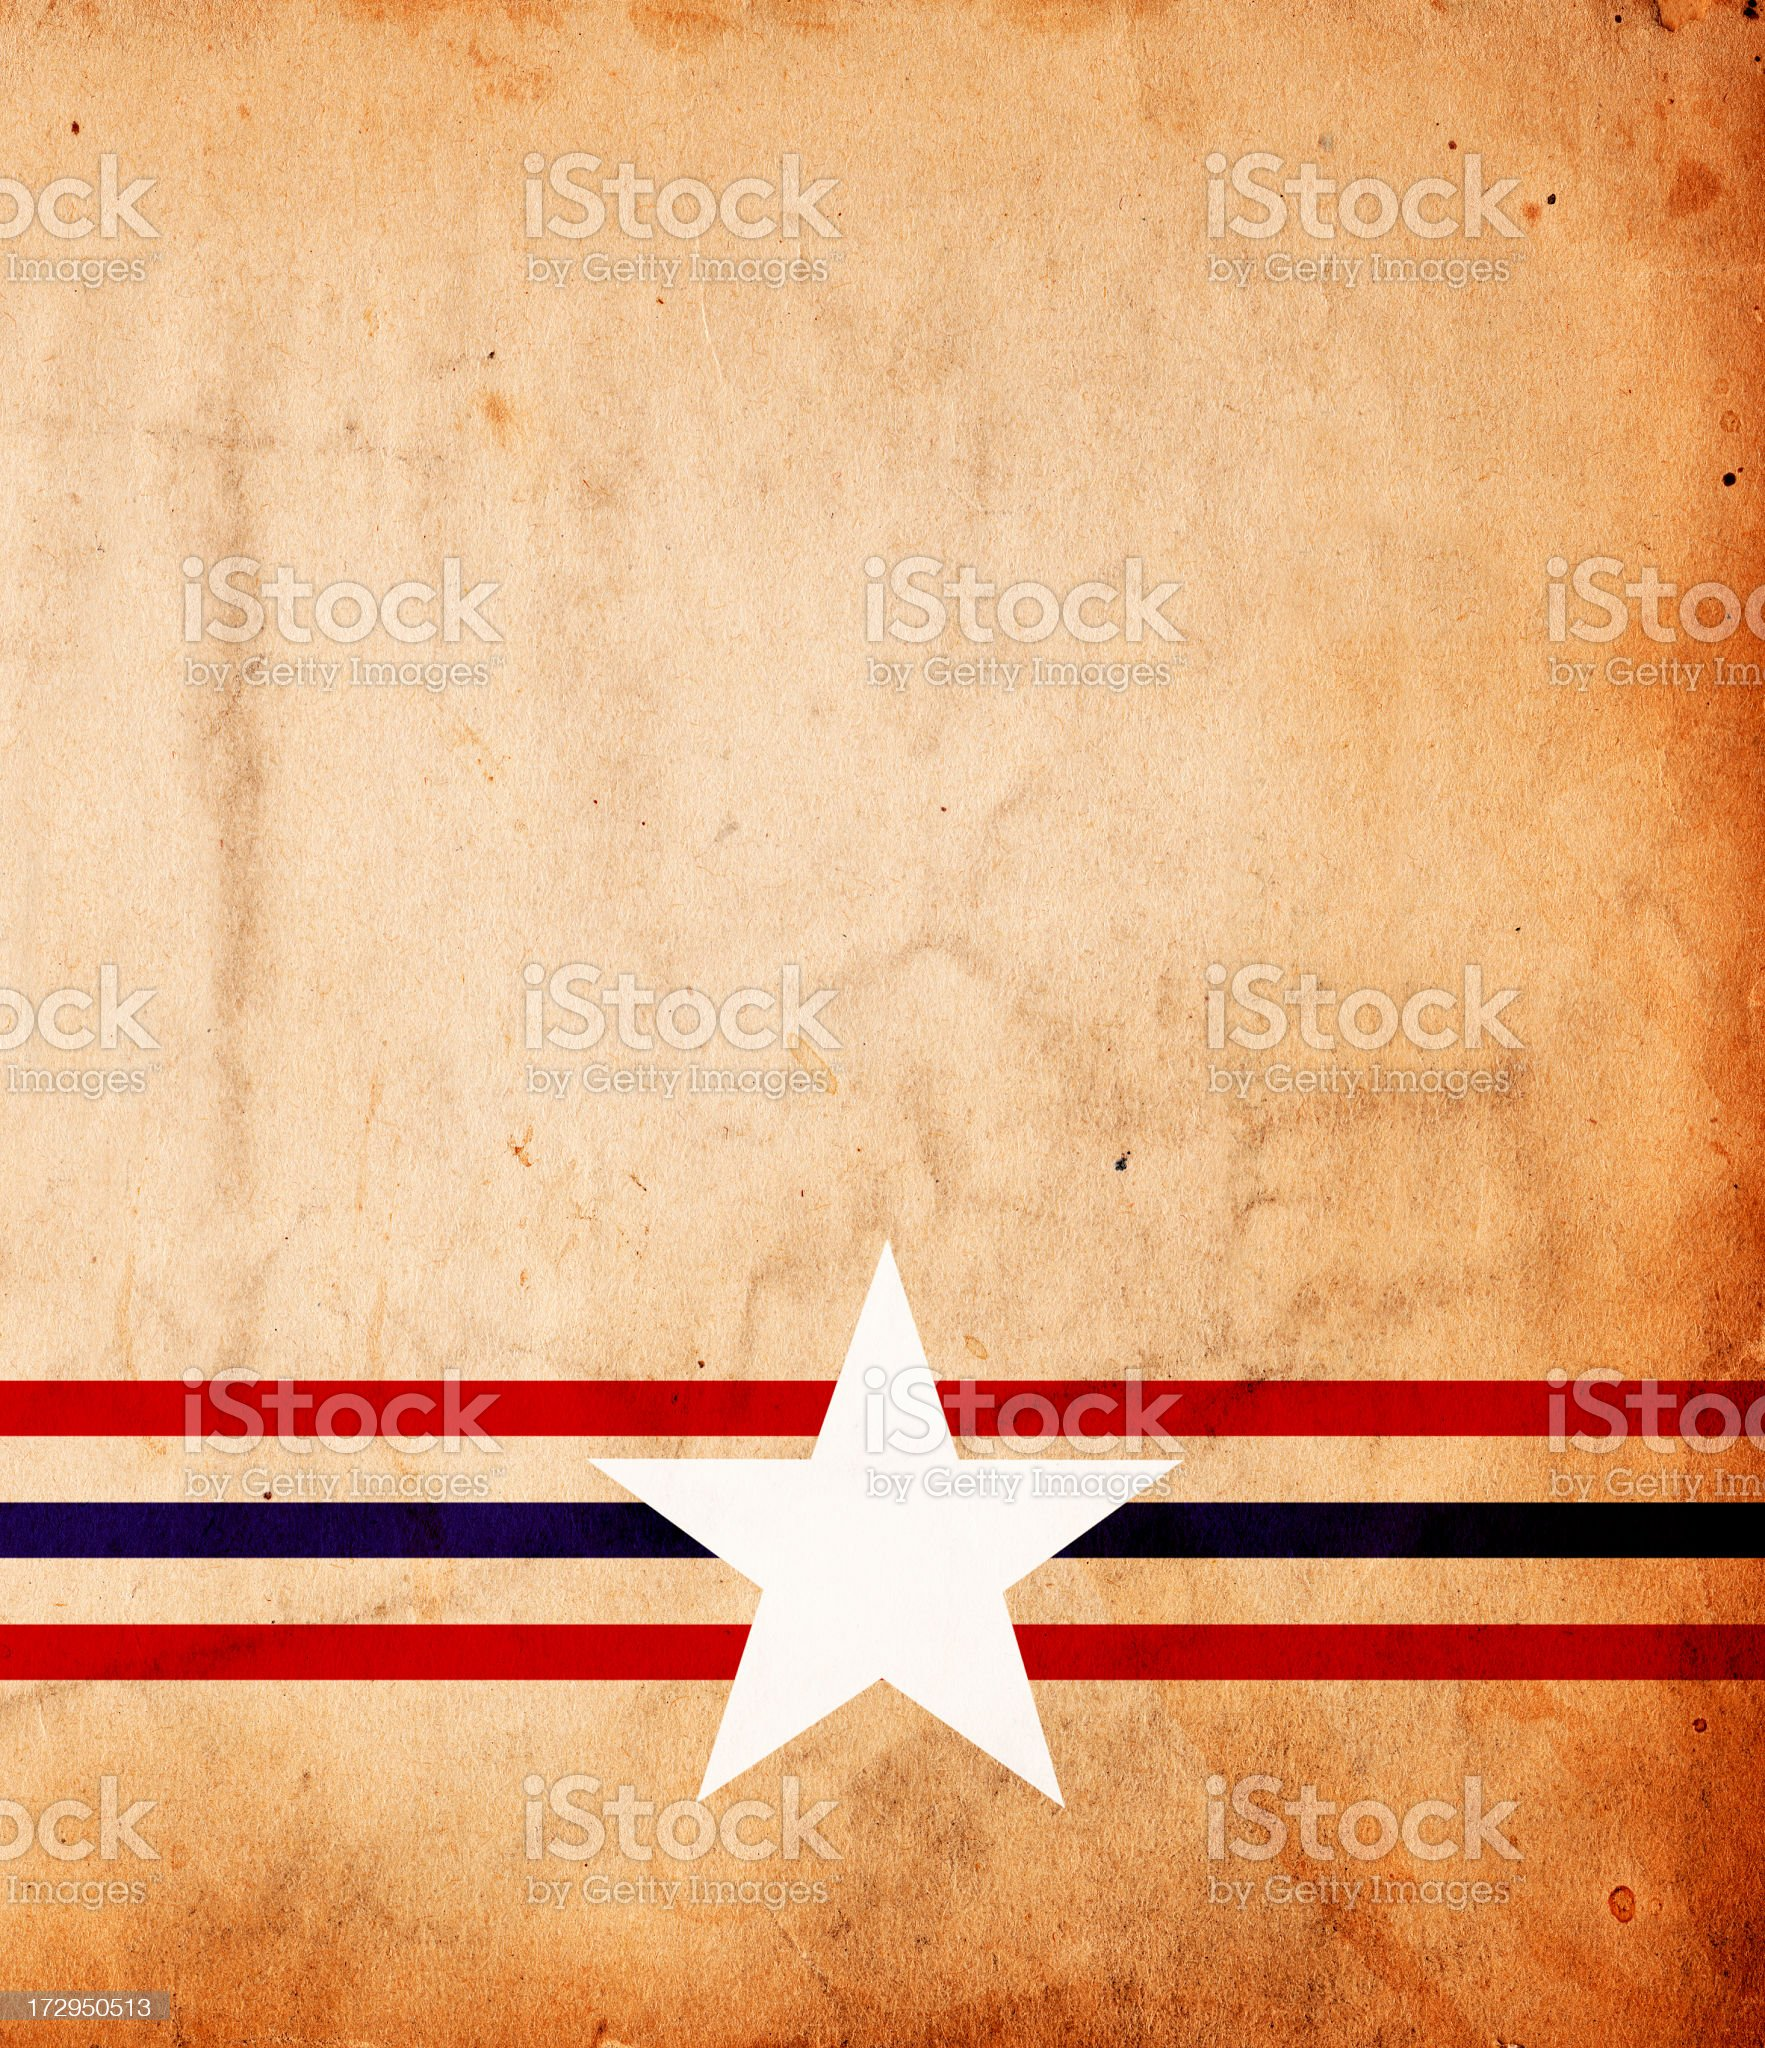 Patriotic grunge paper background with Stars and Stripes royalty-free stock photo